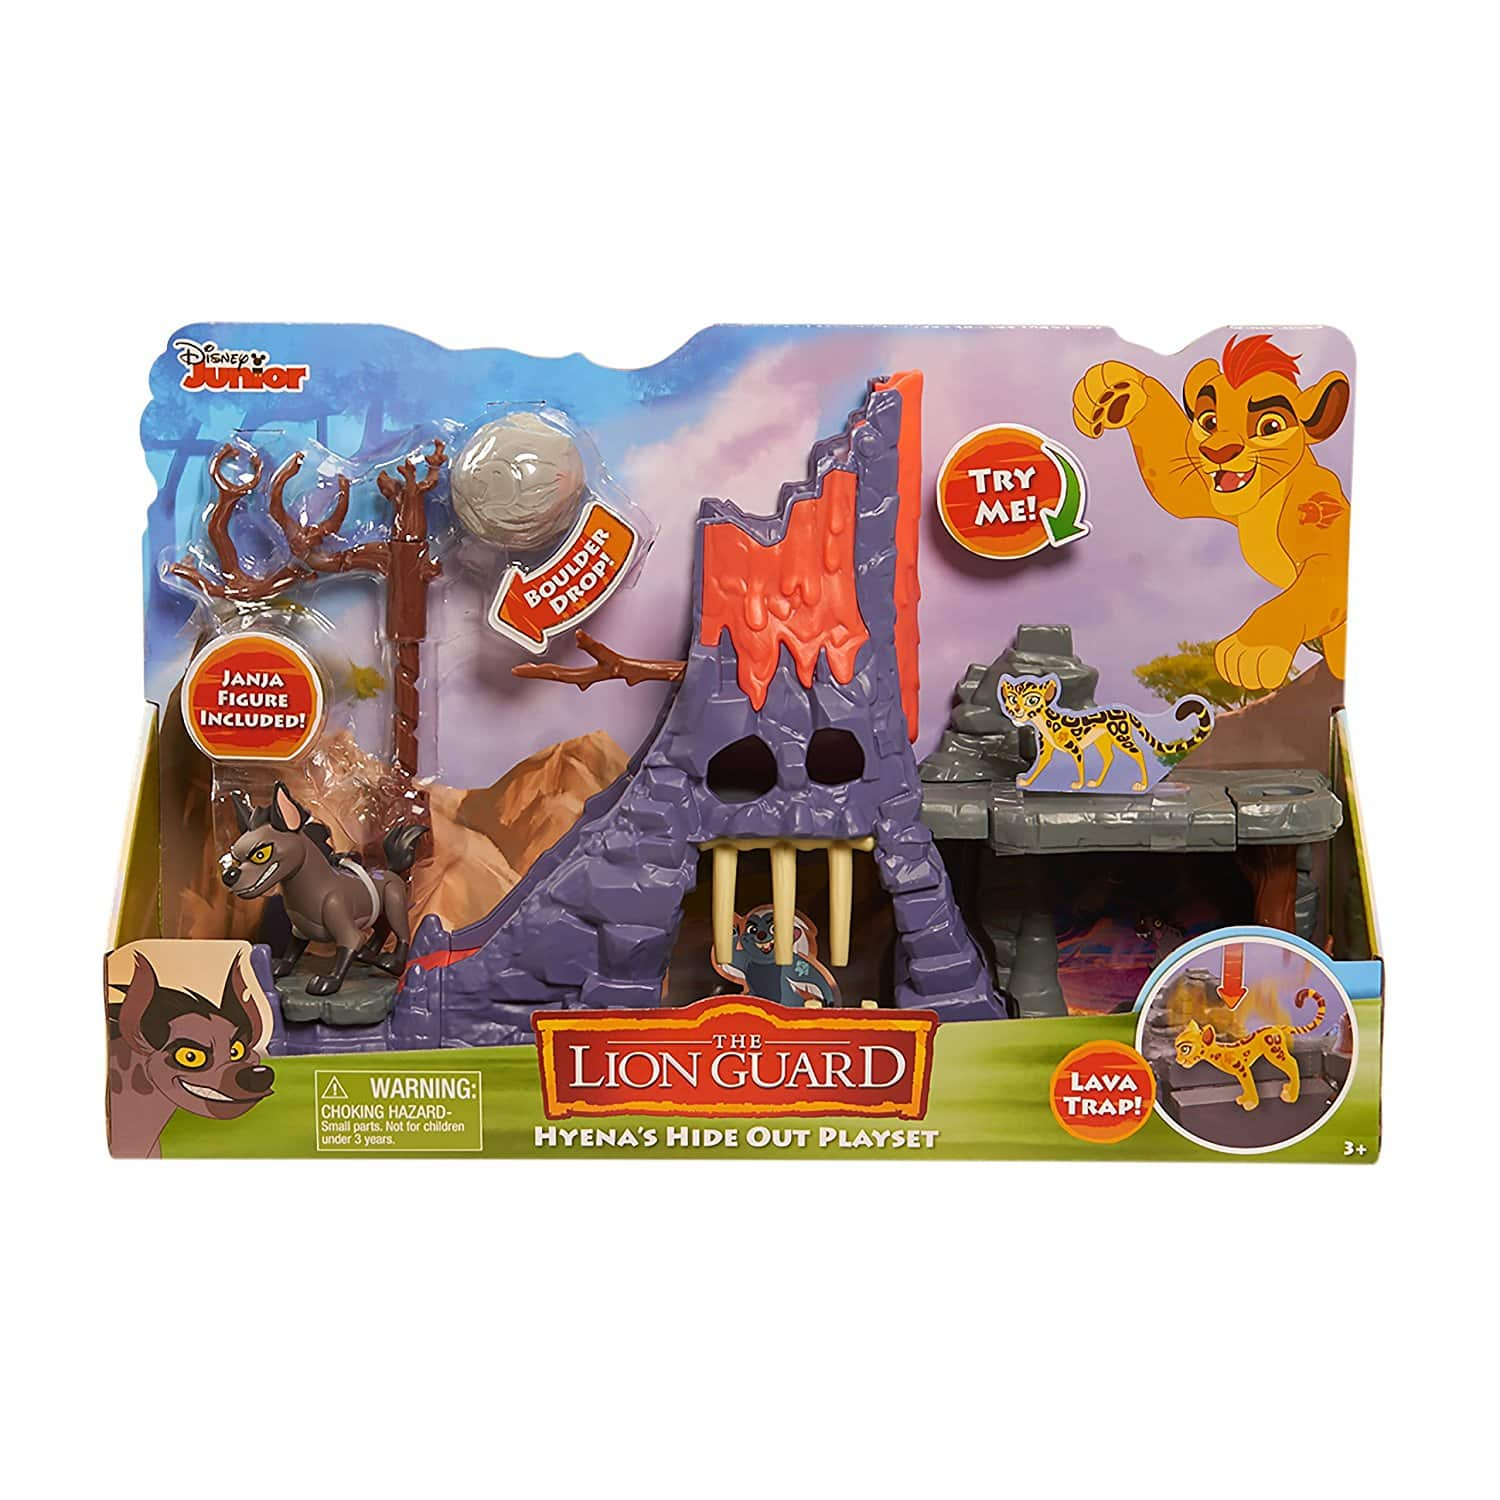 Just Play Disney Junior The Lion Guard Hyena's Hideout Playset (with Janja Figure) at its Best Price $4.41 (78% off) @amazon as add-on item